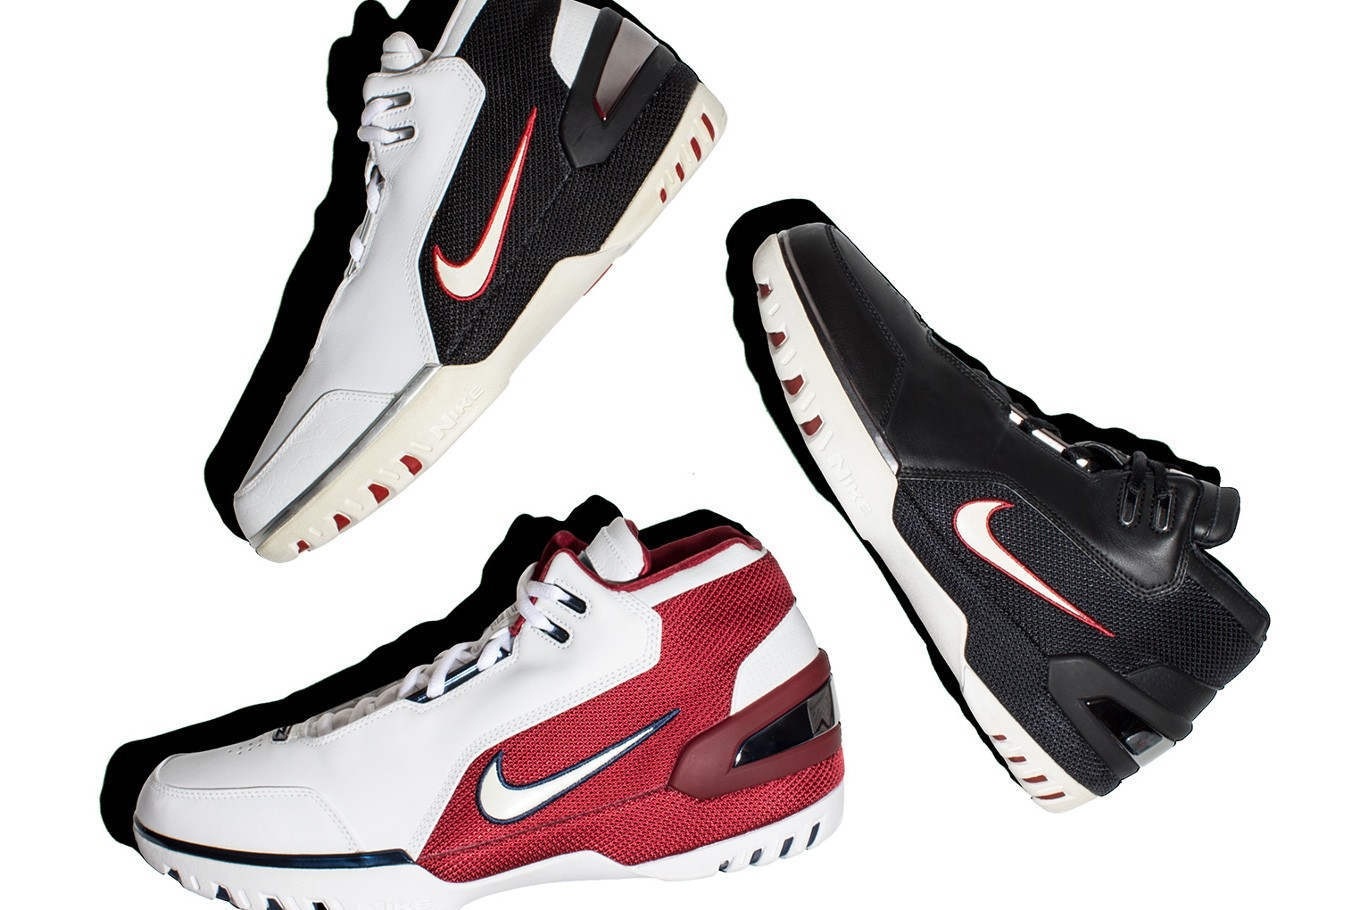 ad9dd74e277 Nike brings back LeBron James  first signature shoes - Lifestyle ...